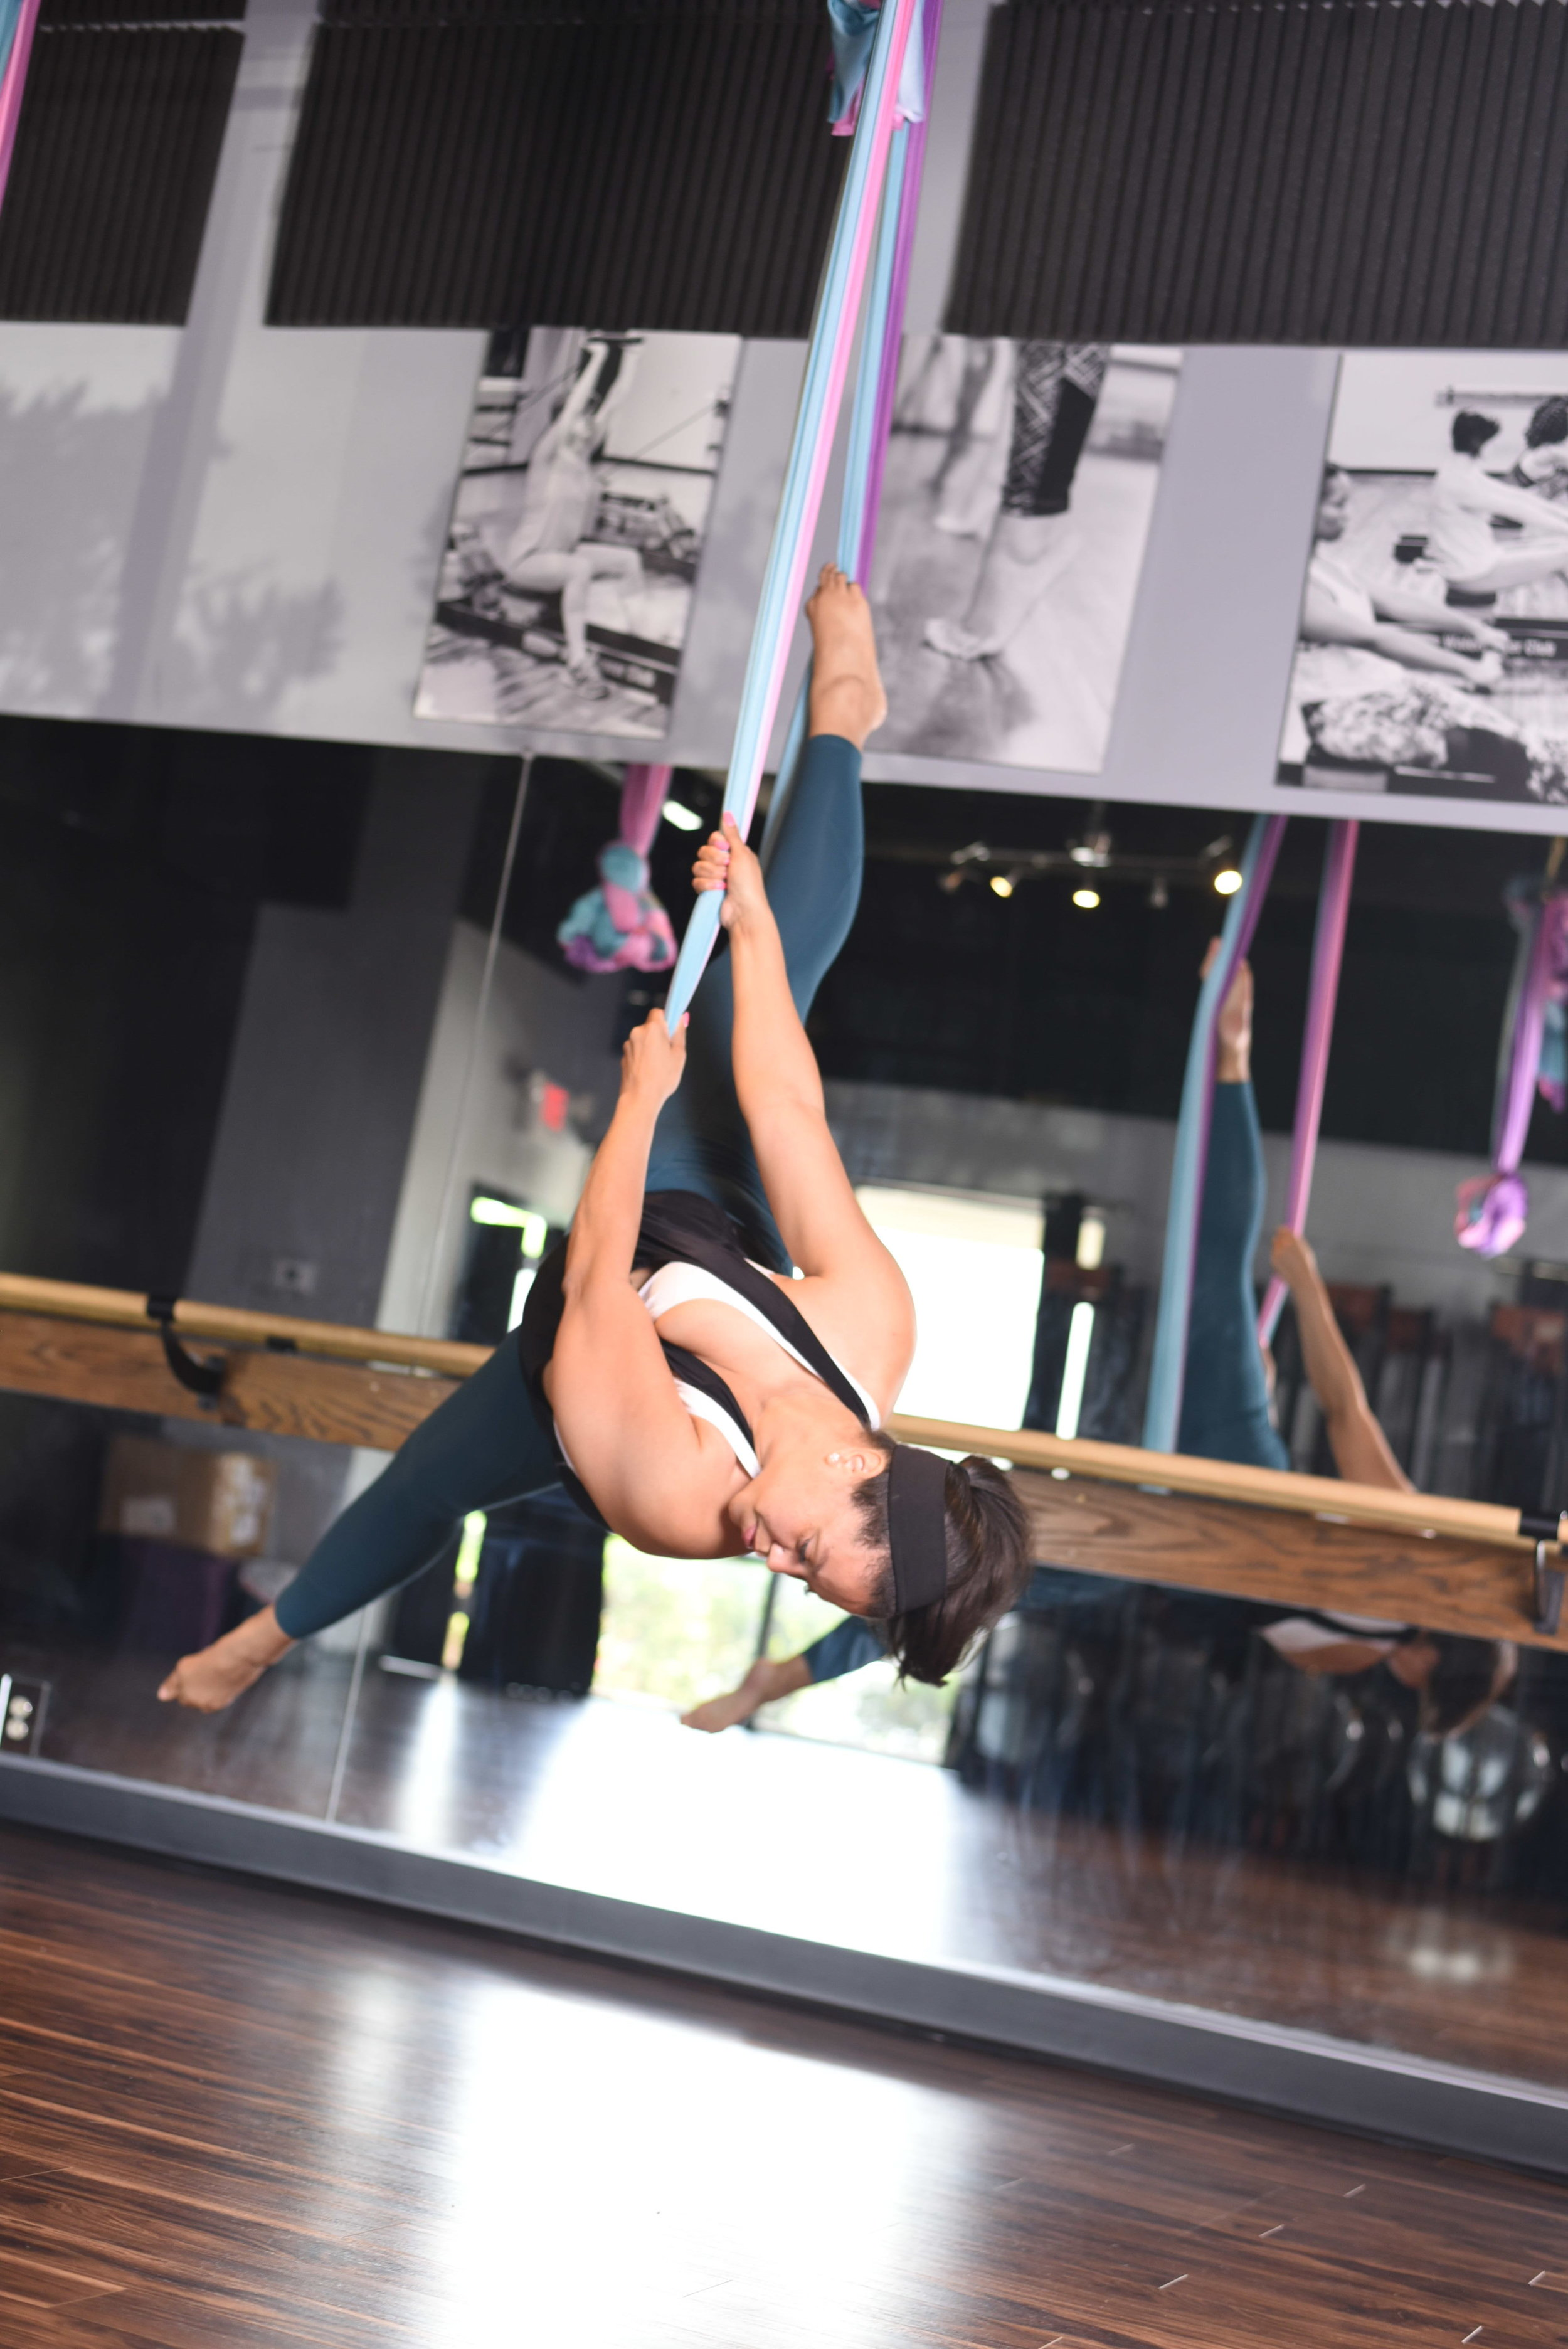 SKY KANDY - 15 MINUTES SKY BARRE35 MINUTES SKY KANDY TRICKSLEARN FUN SIMPLE TRICKS ON LOW AERIAL SLING